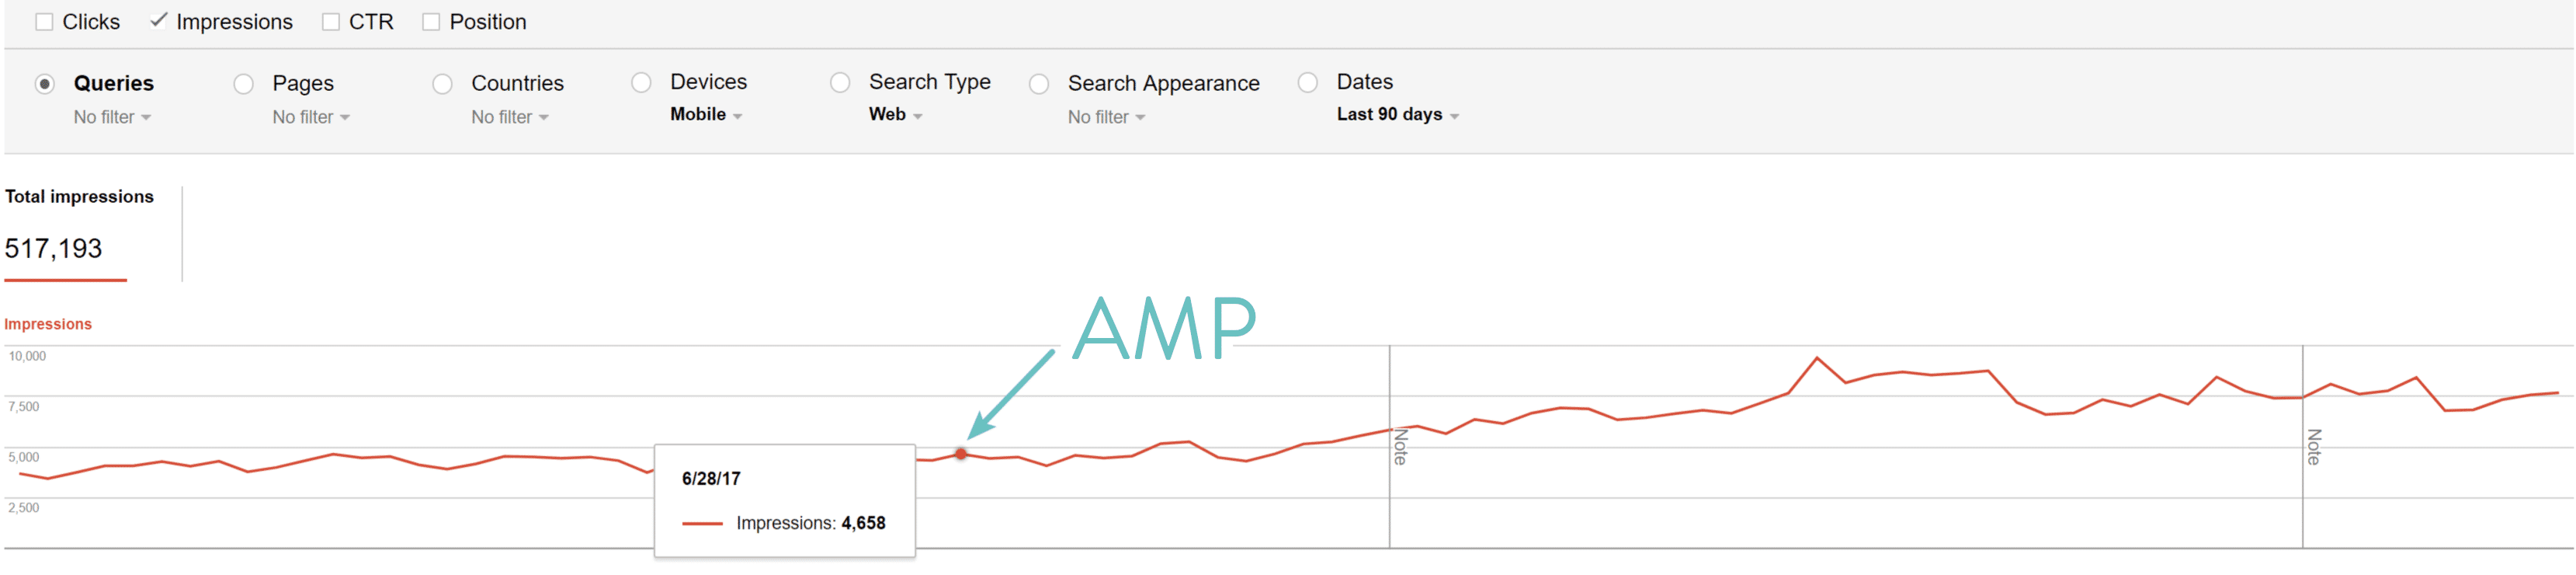 Google AMP-impressies